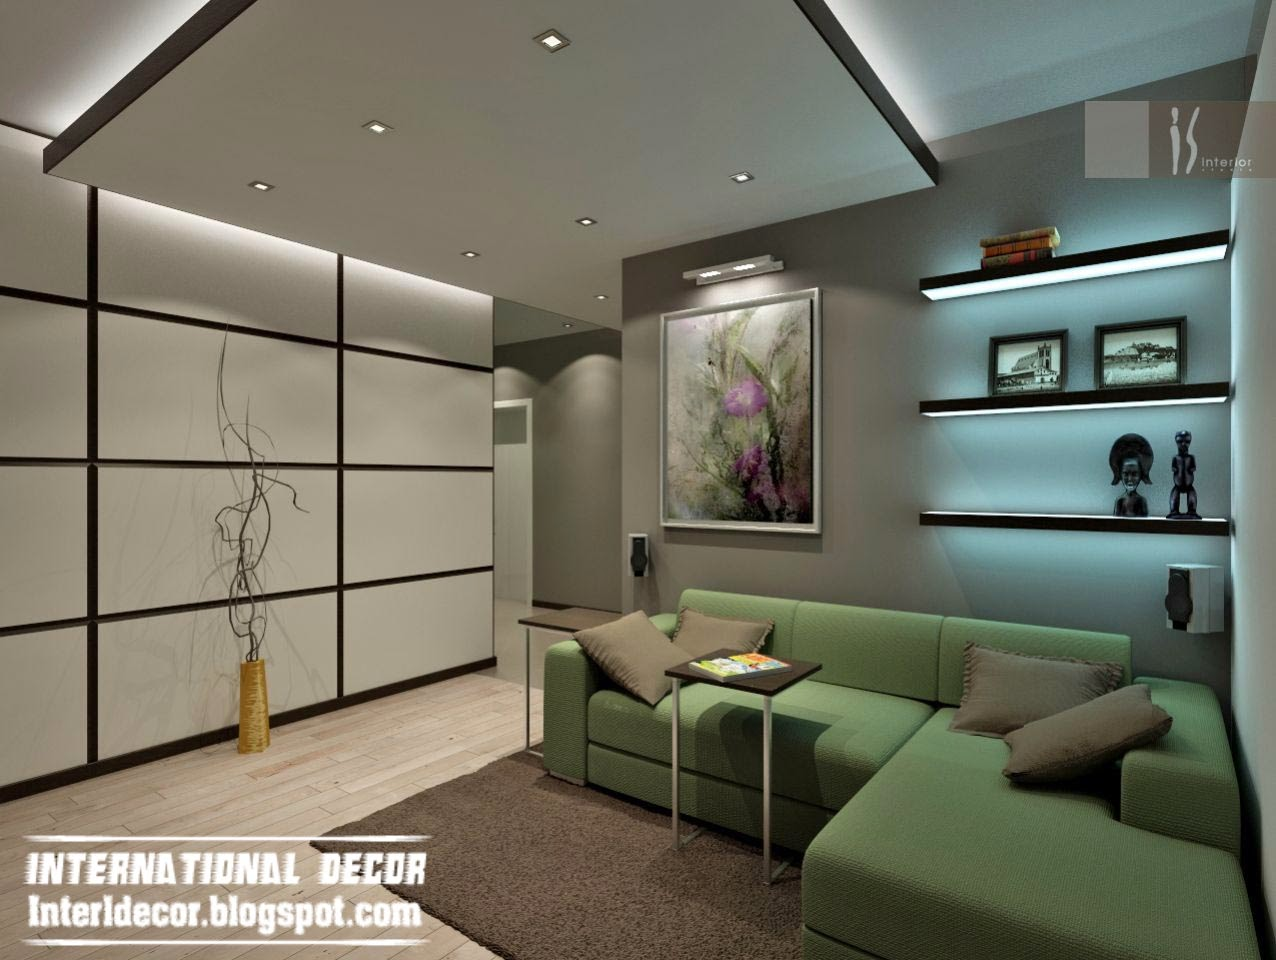 Interior Decor Idea Top 10 Suspended Ceiling Tiles